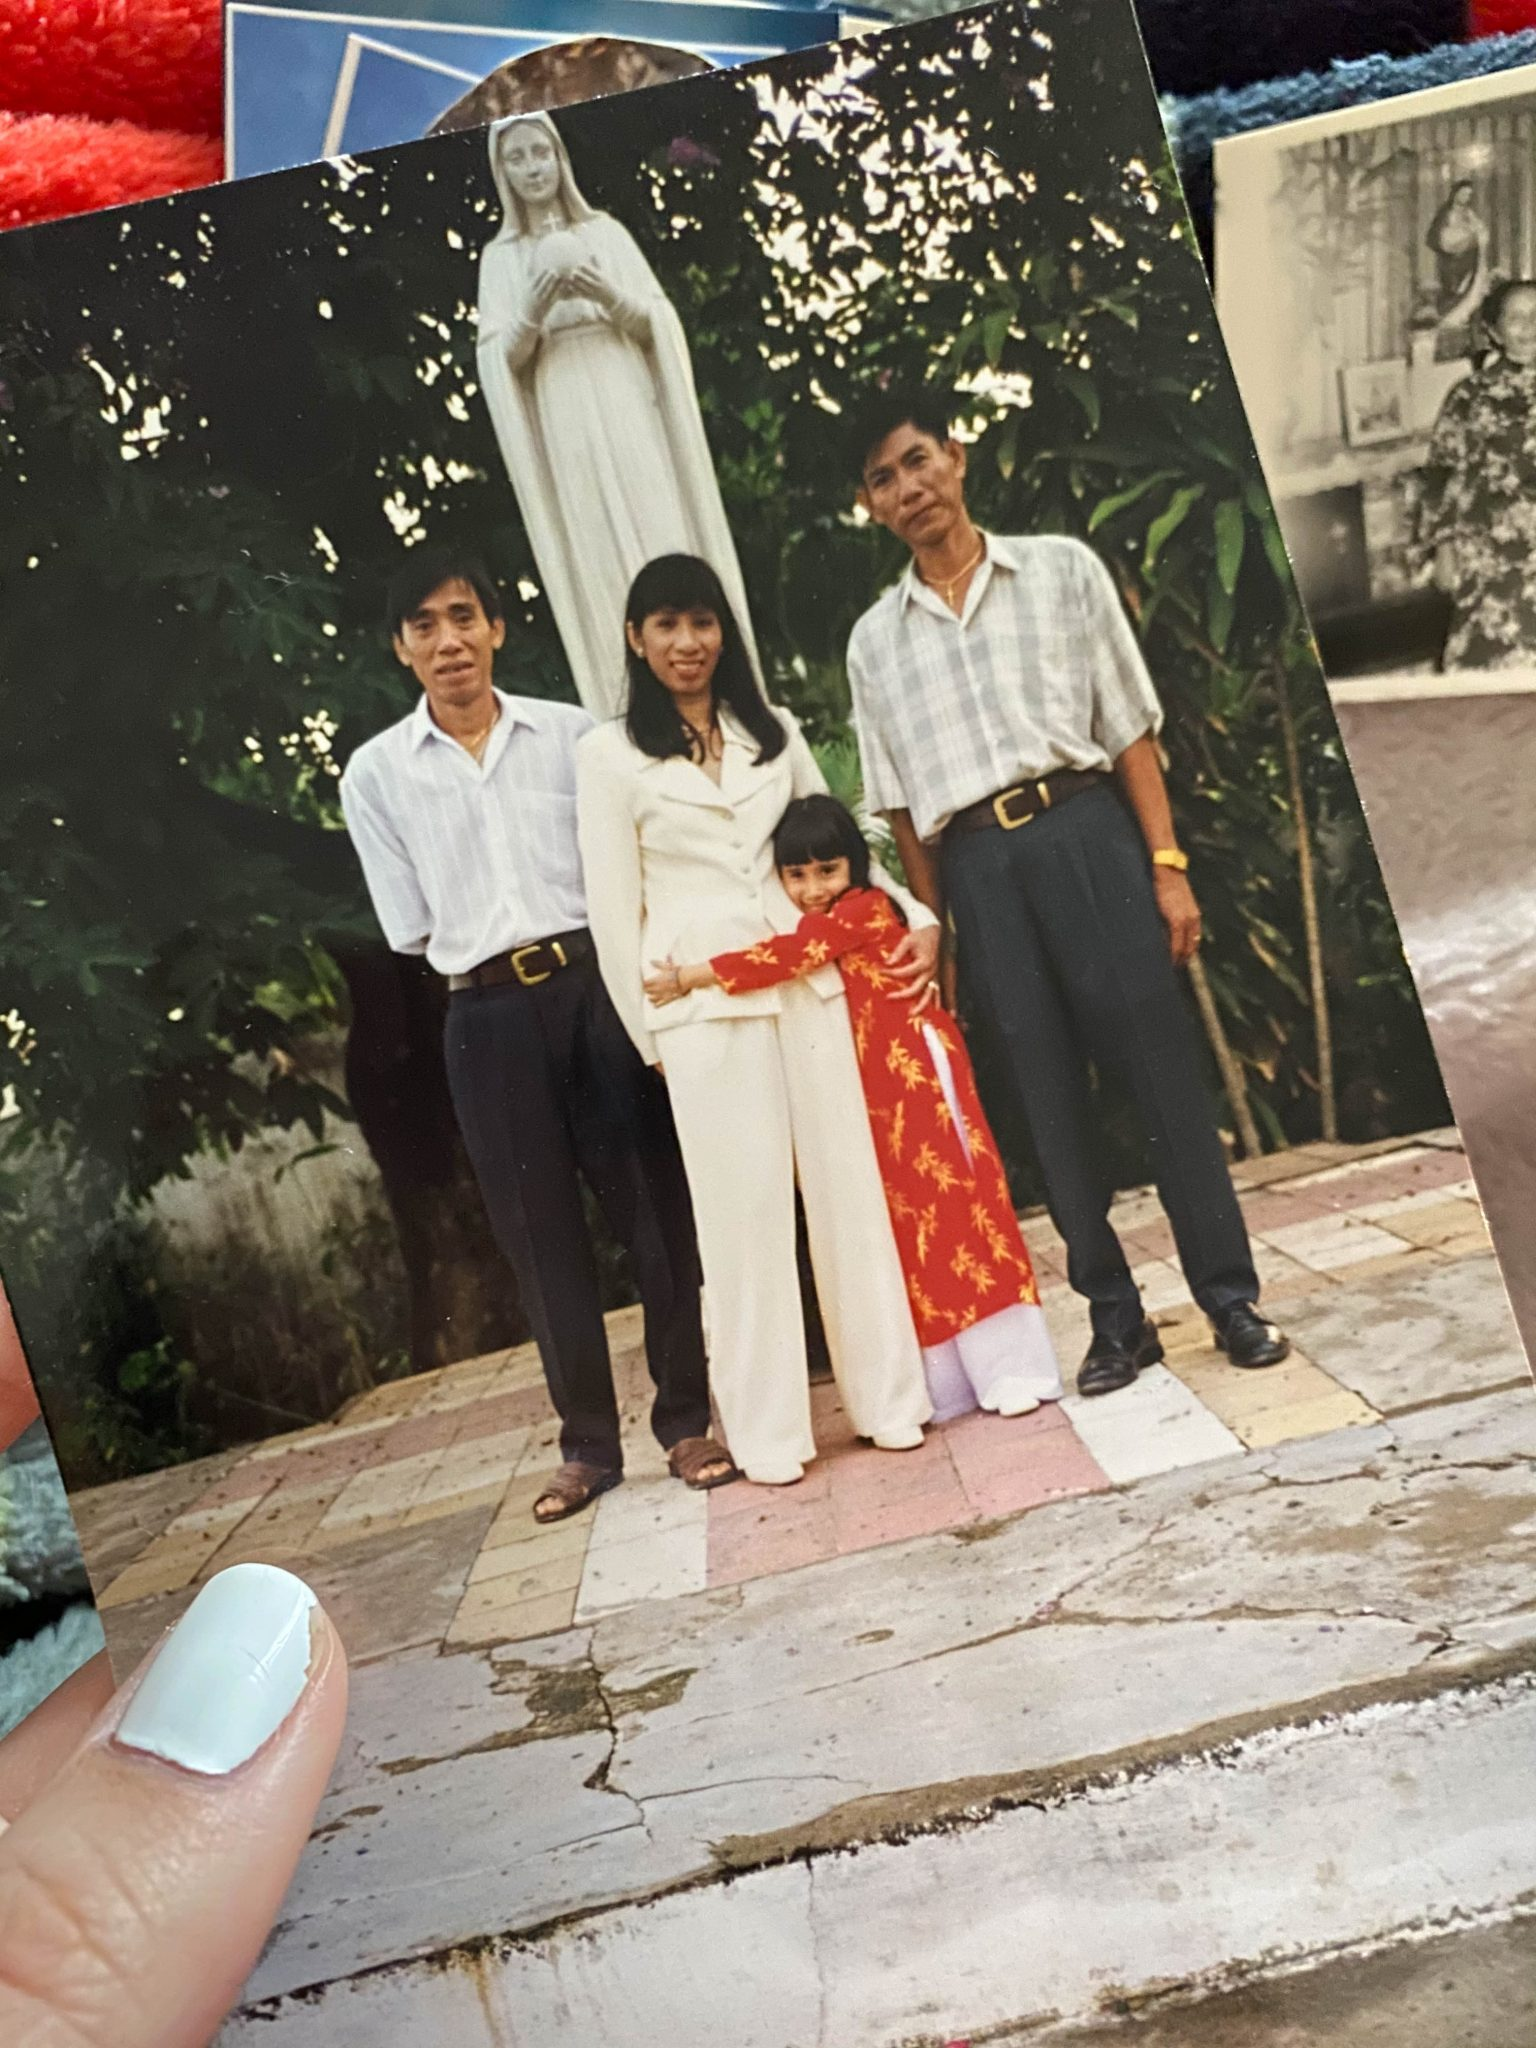 Life Lately July 2021 by Basically A Mess (photo of a family in Vietnam)